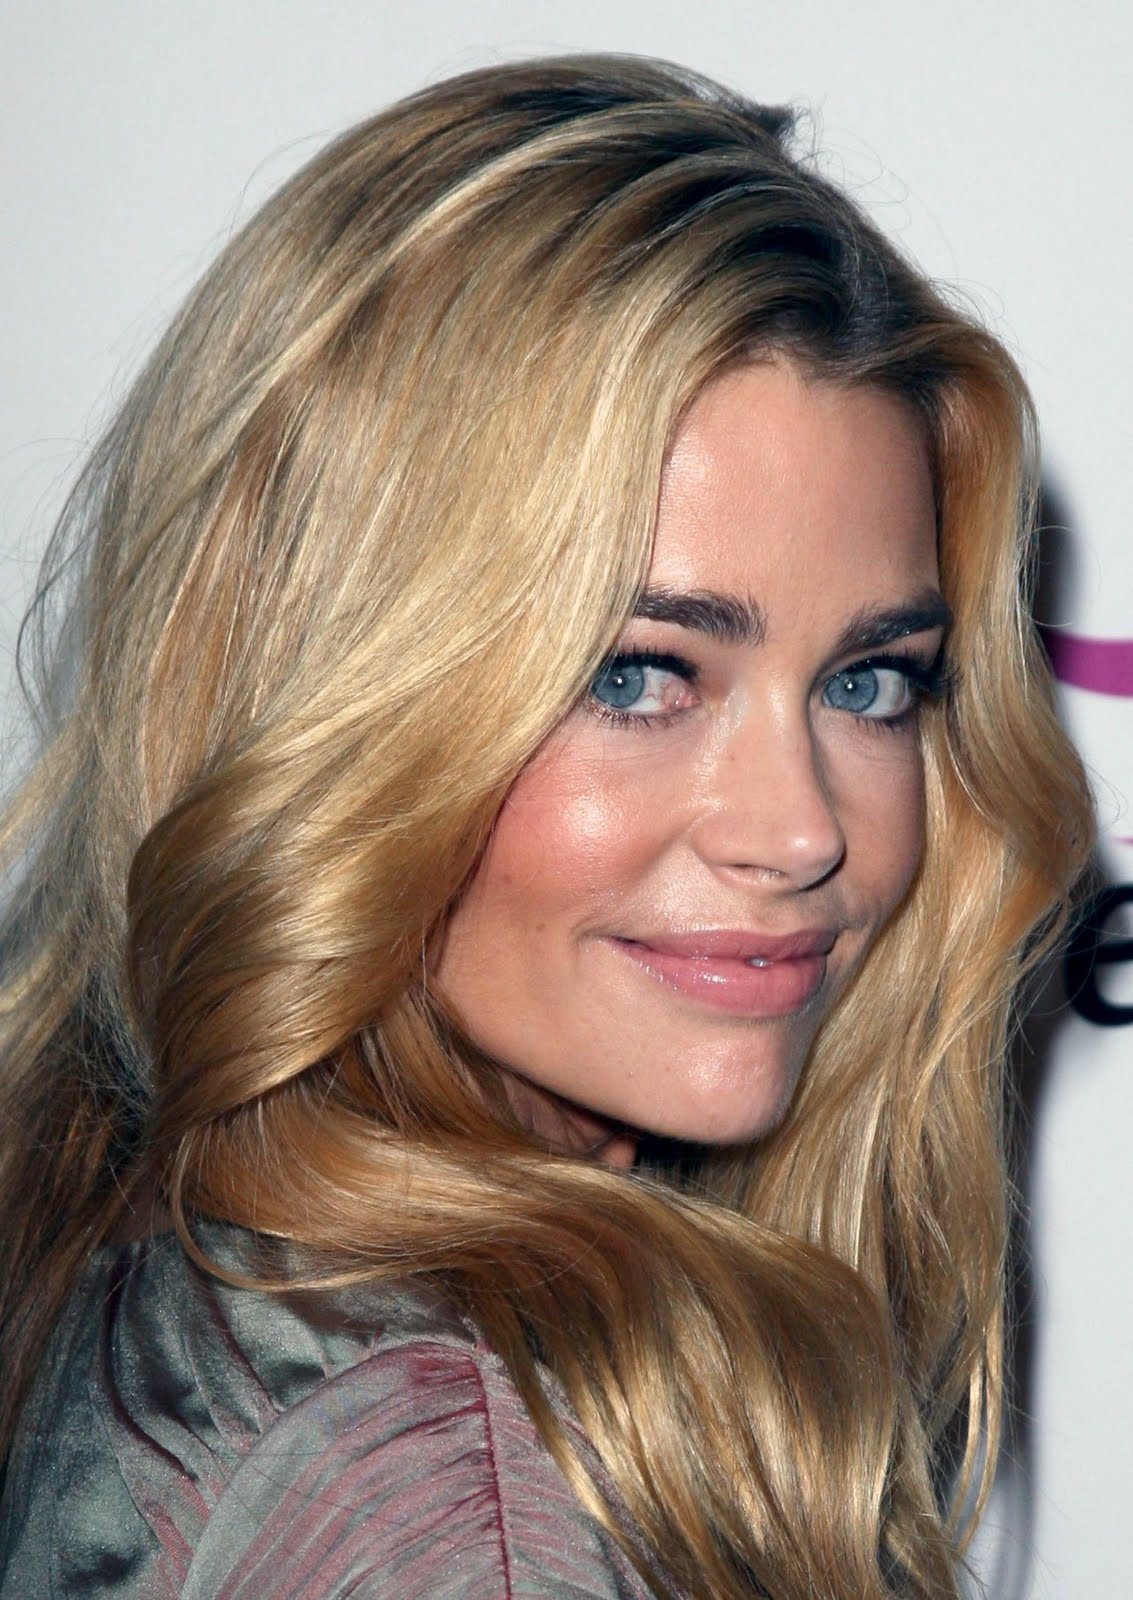 Actresses In James Bond Movies Denise Richards In The